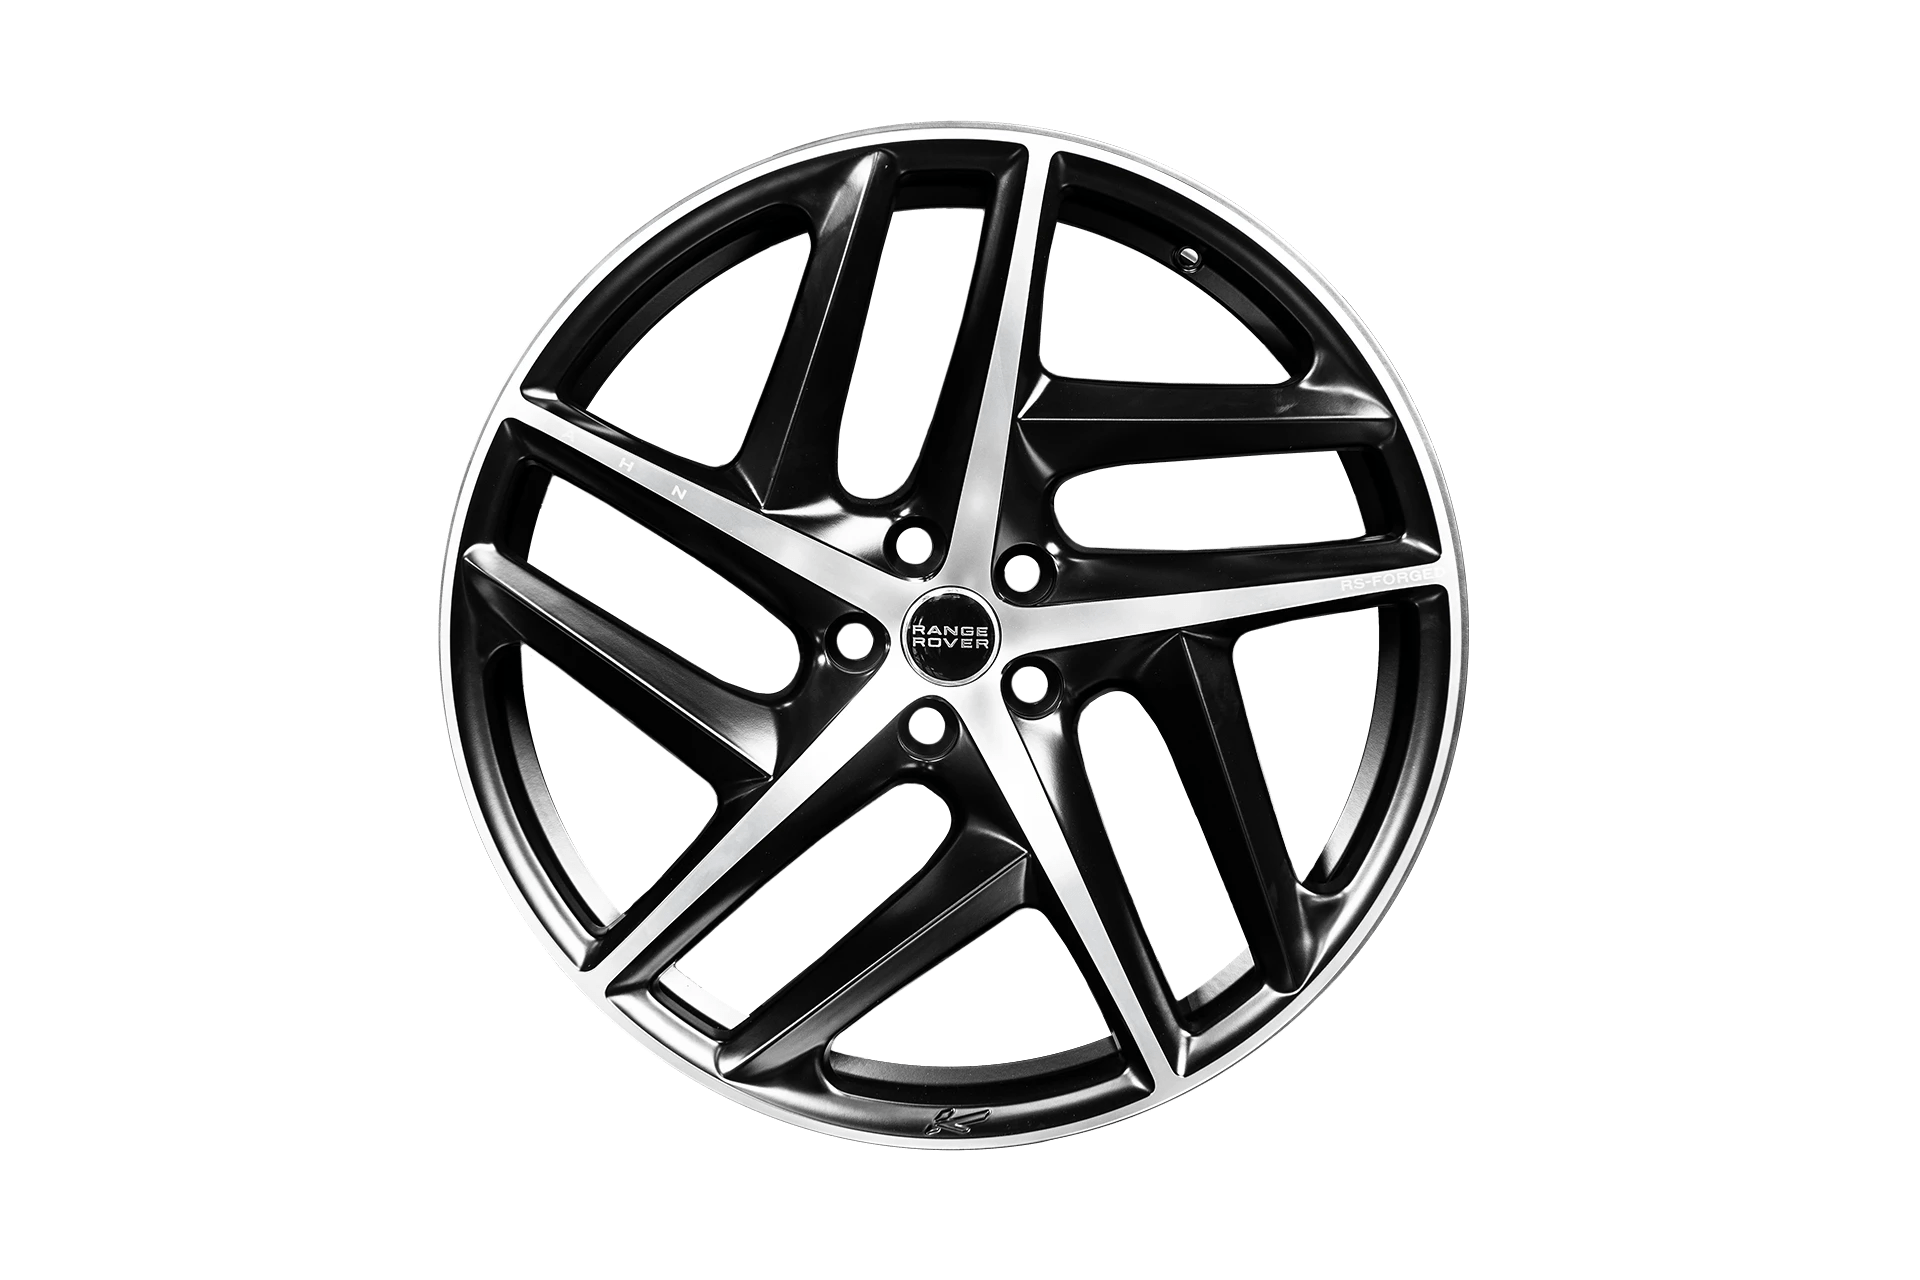 Range Rover Sport (2018-PRESENT) Type 52 RS-Forged Alloy Wheels - Project Kahn